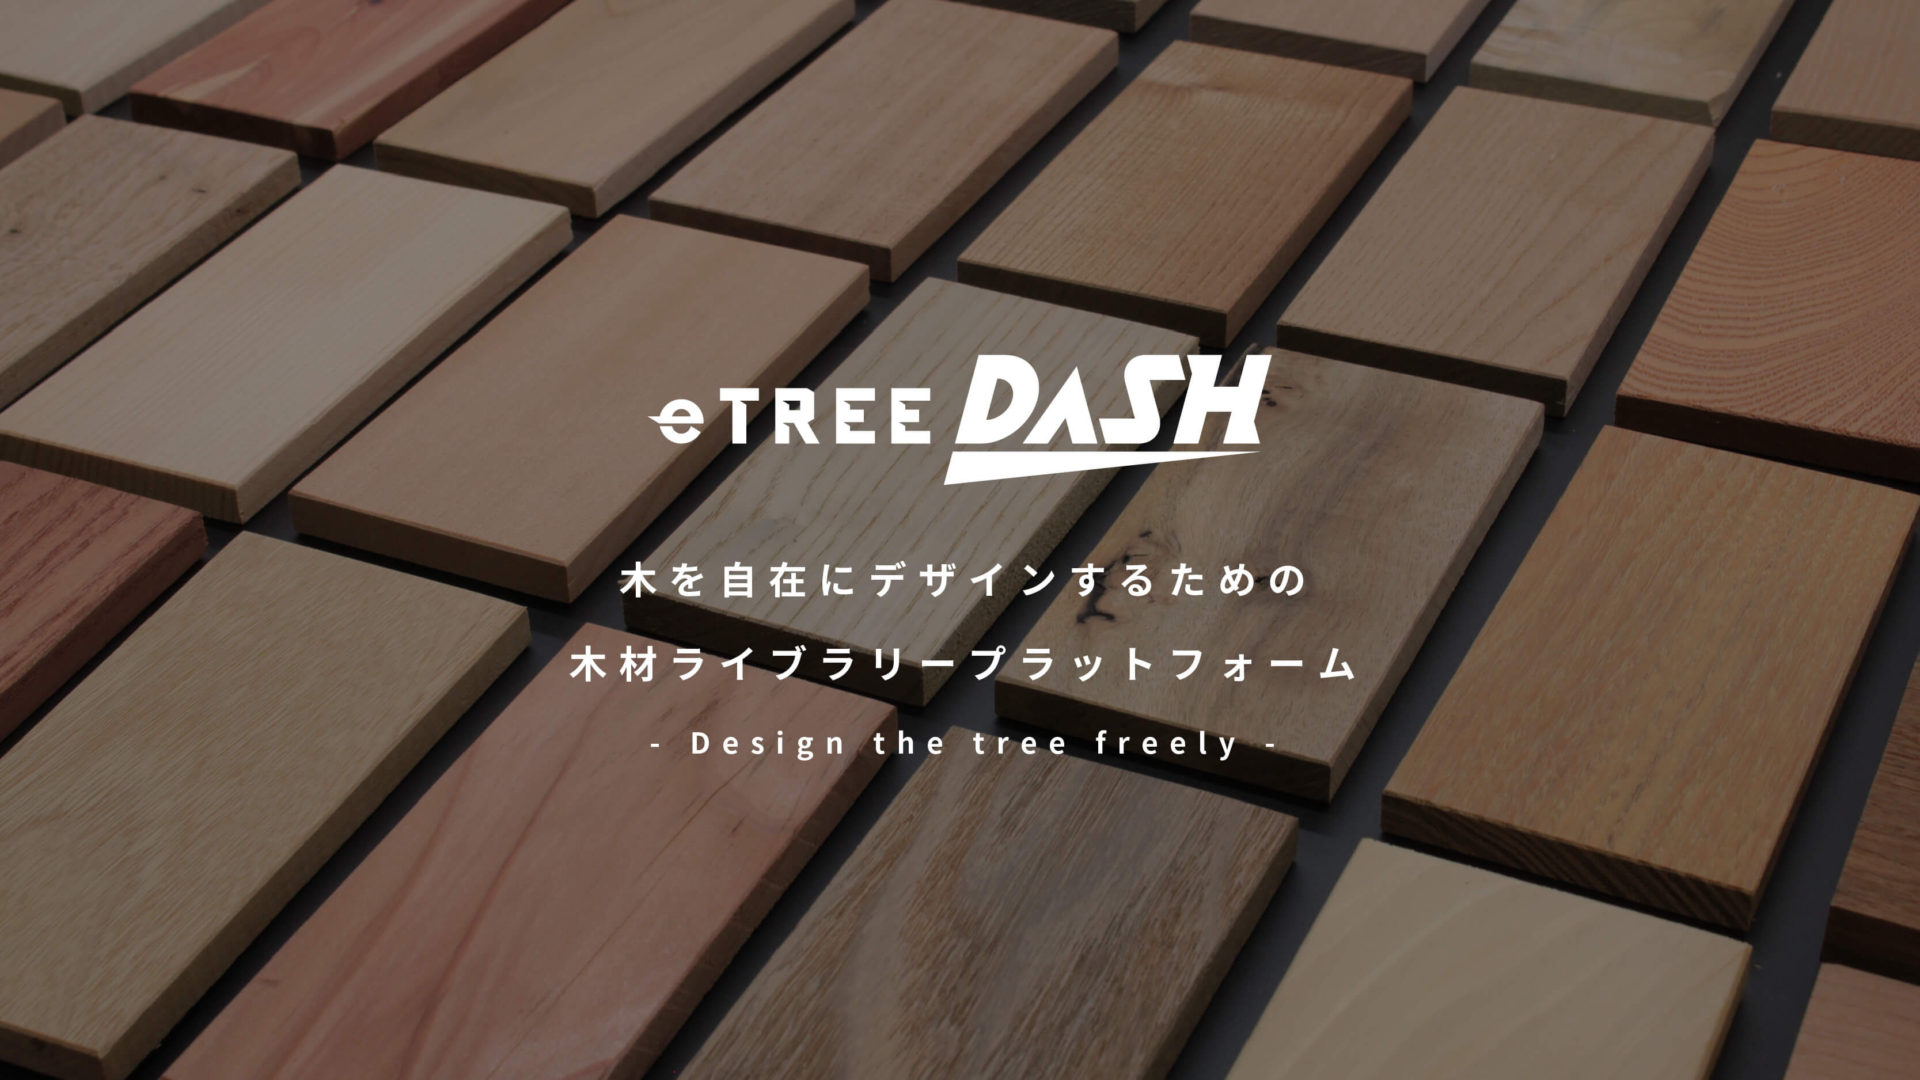 eTREE DASH